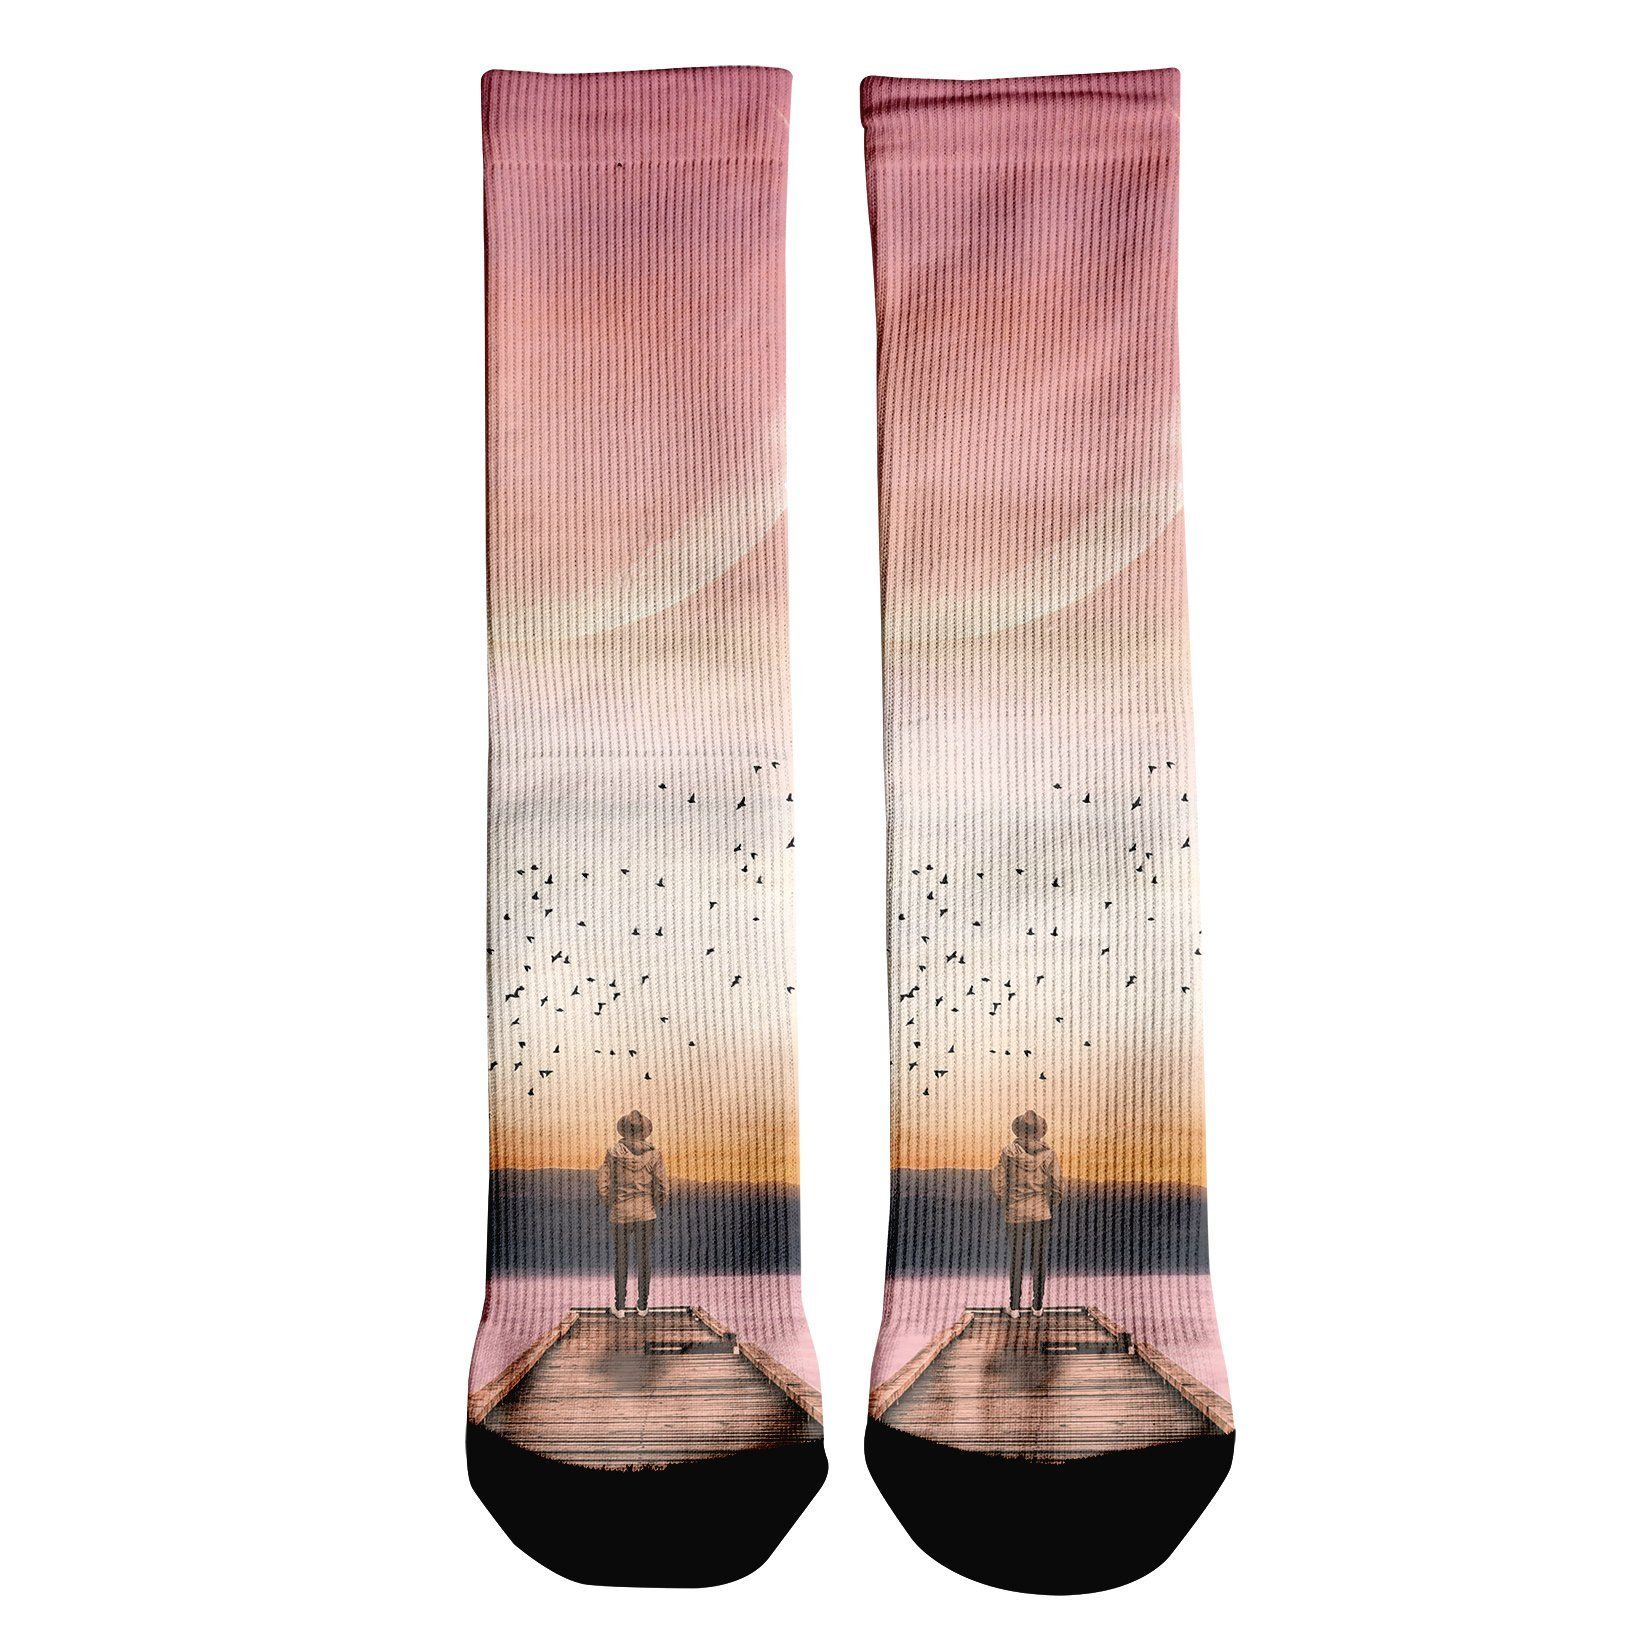 Over The Horizon Crew Socks